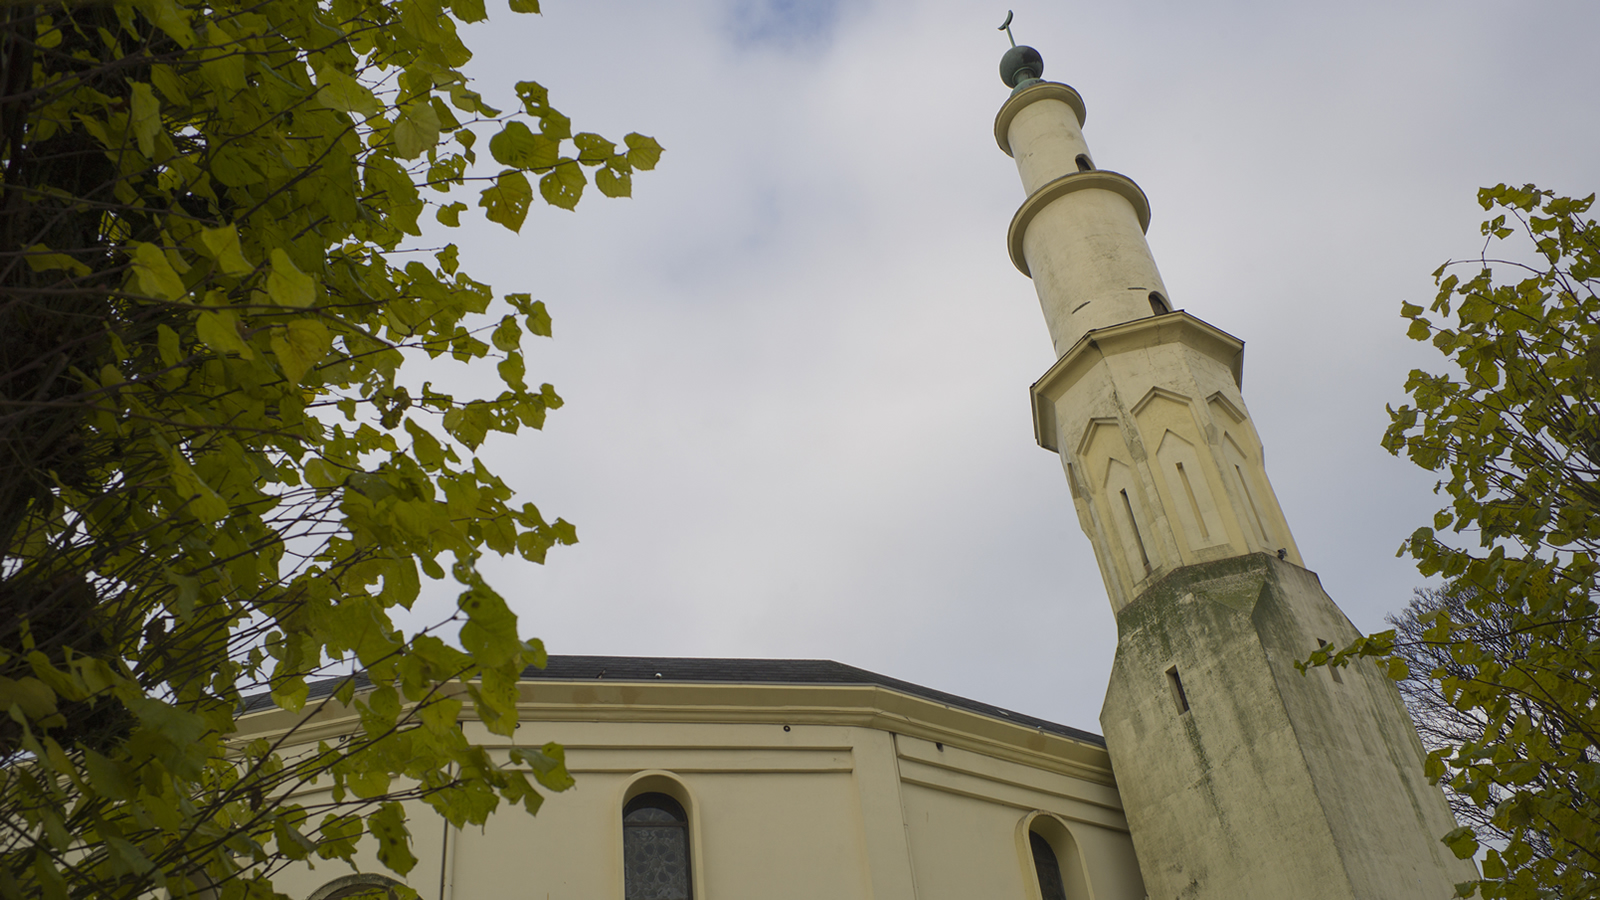 Grand Mosque in Brussels, Belgium